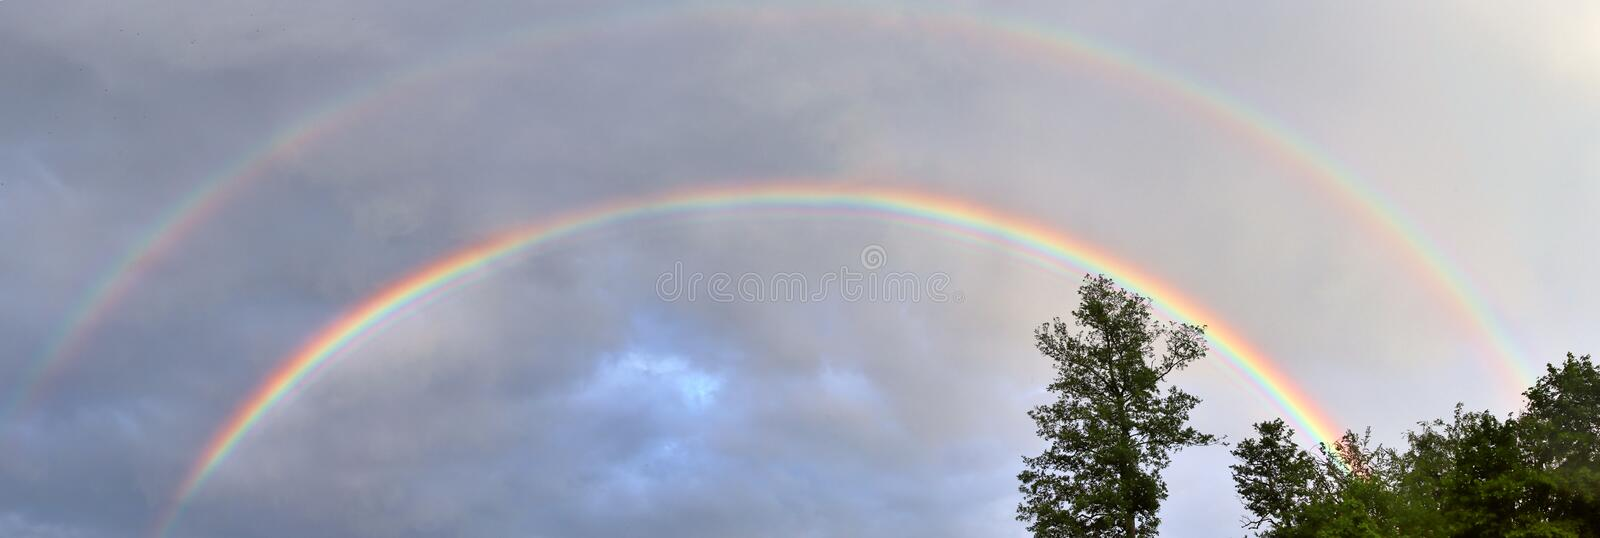 Stunning natural double rainbows plus supernumerary bows seen at a lake in northern germany royalty free stock image